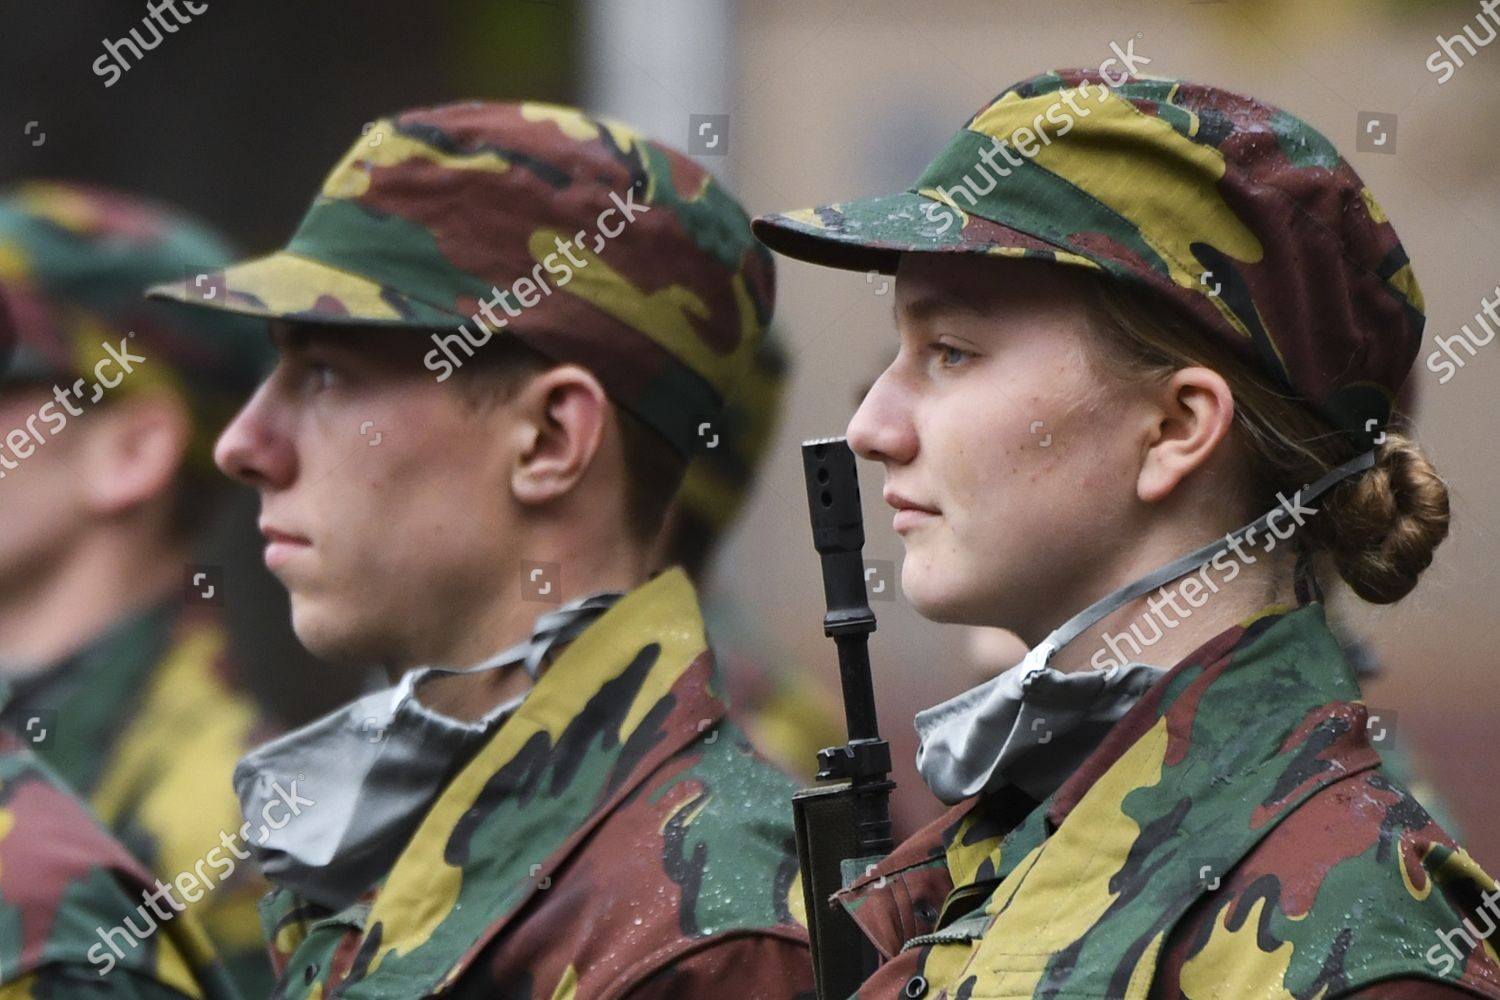 belgian-royals-attend-ceremony-for-the-presentation-of-the-blue-berets-royal-military-academy-erm-brussels-belgium-shutterstock-editorial-10790437an.jpg